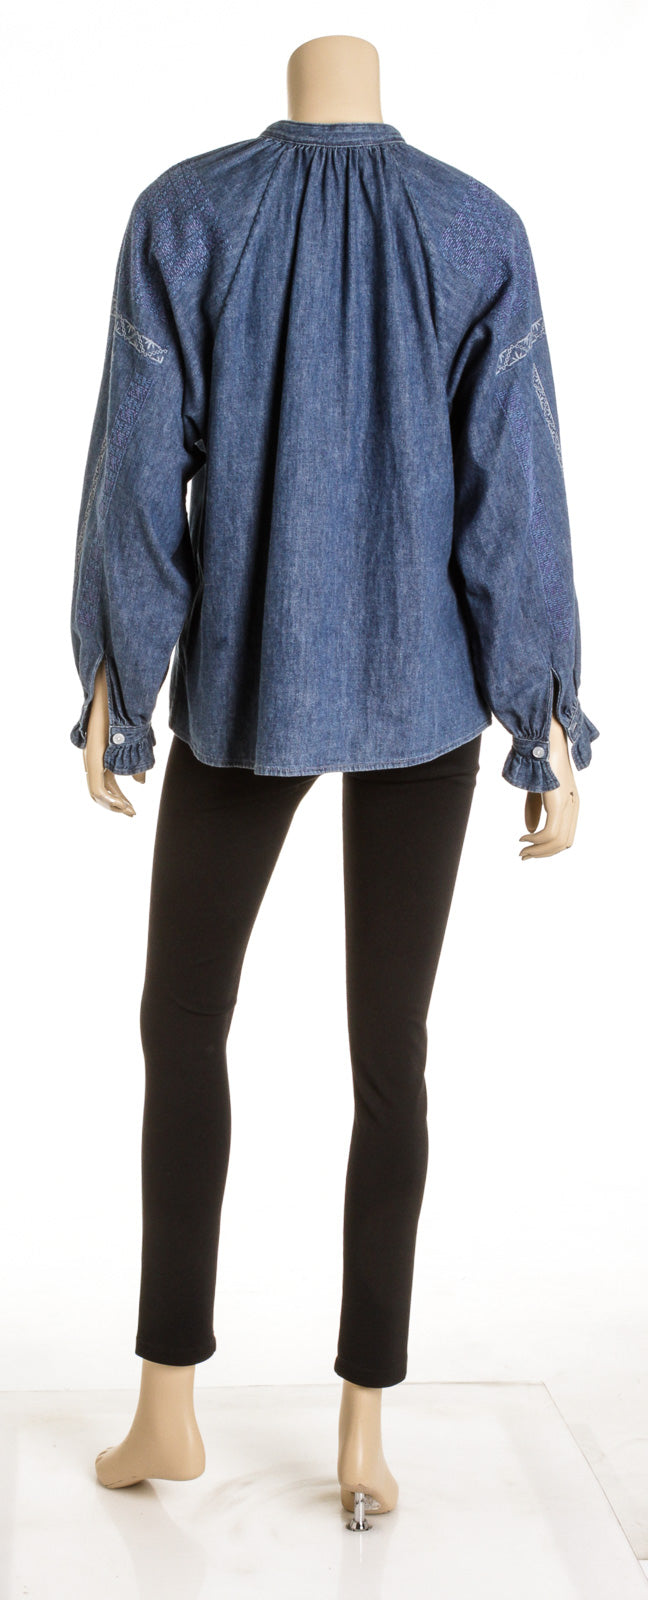 Celine Blue Cotton Denim Tunic Top (Size S)